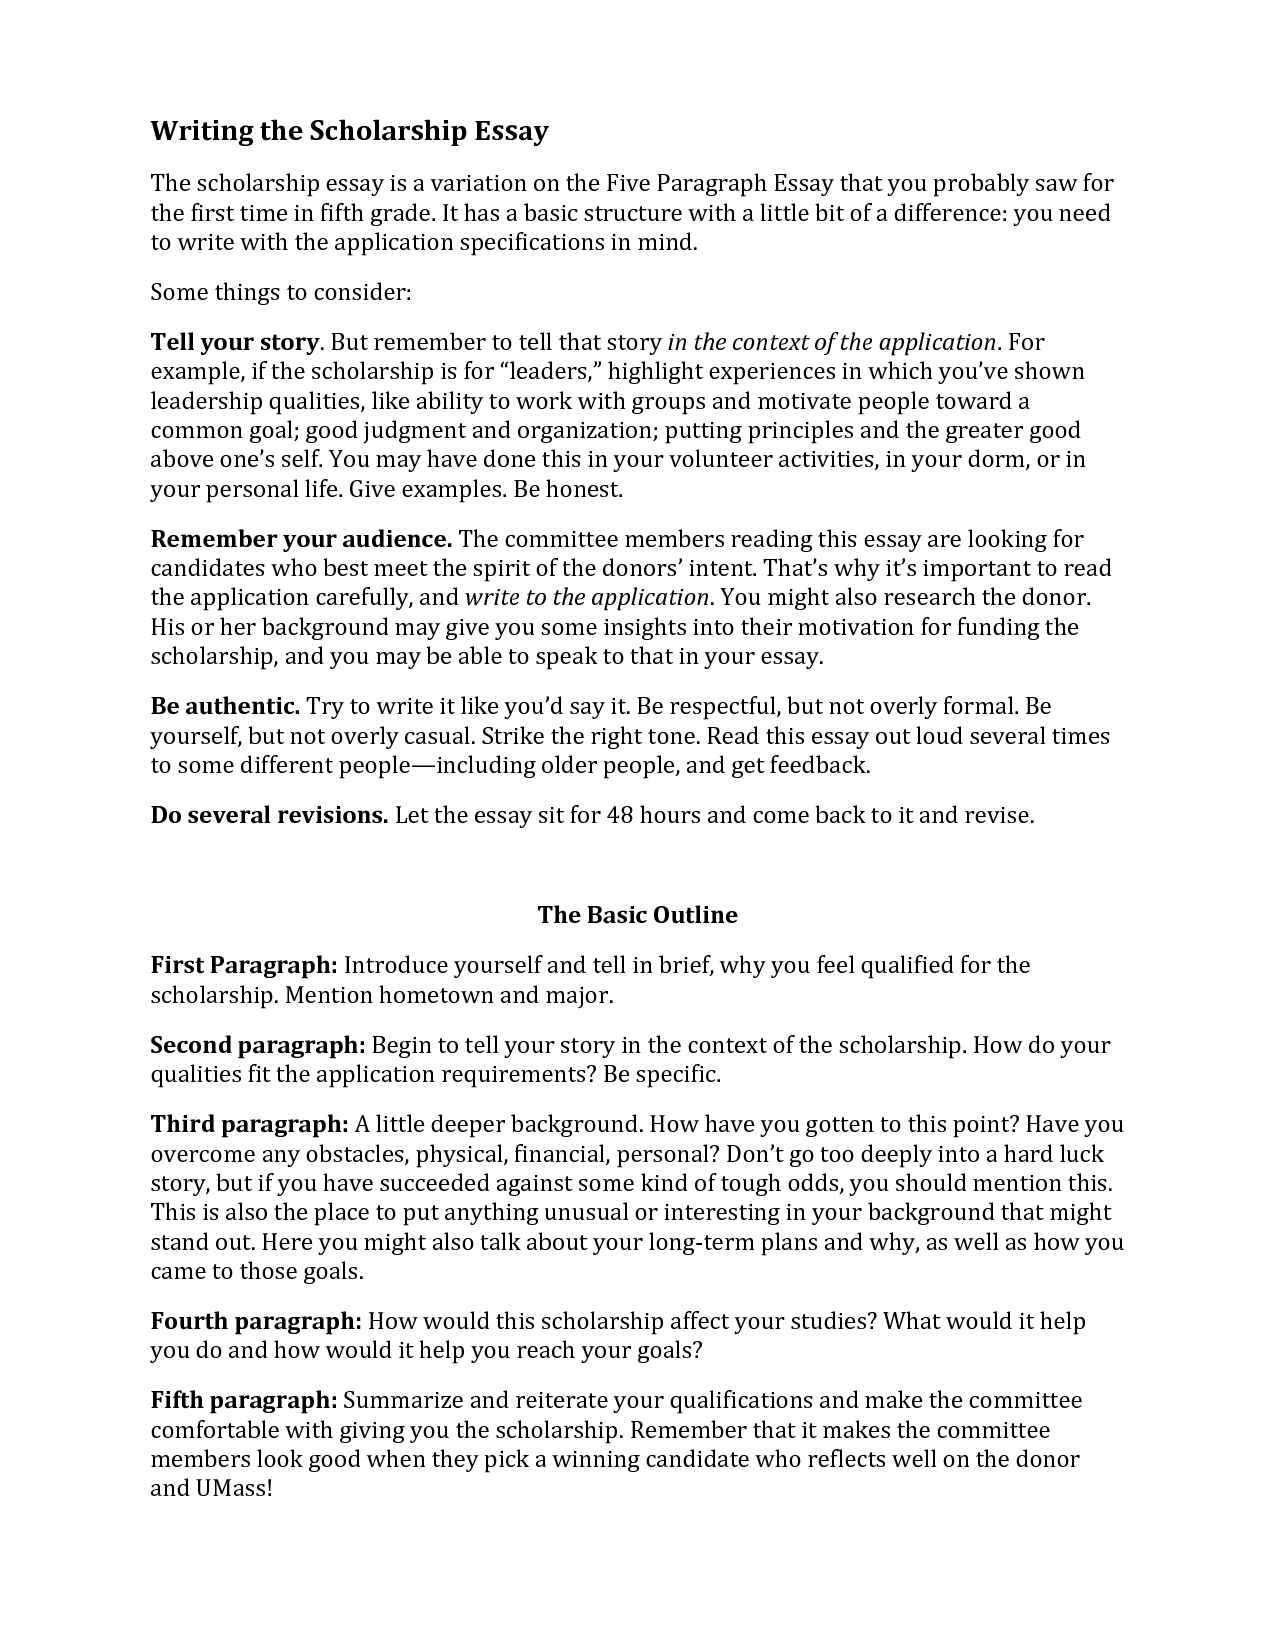 024 How To Write Biography Essay Example Short Format Solid Graphikworks Co An Autobiography For Medical School Best Ideas Of Didactic Spectacular Templat Archaicawful A Life Good Personal Full